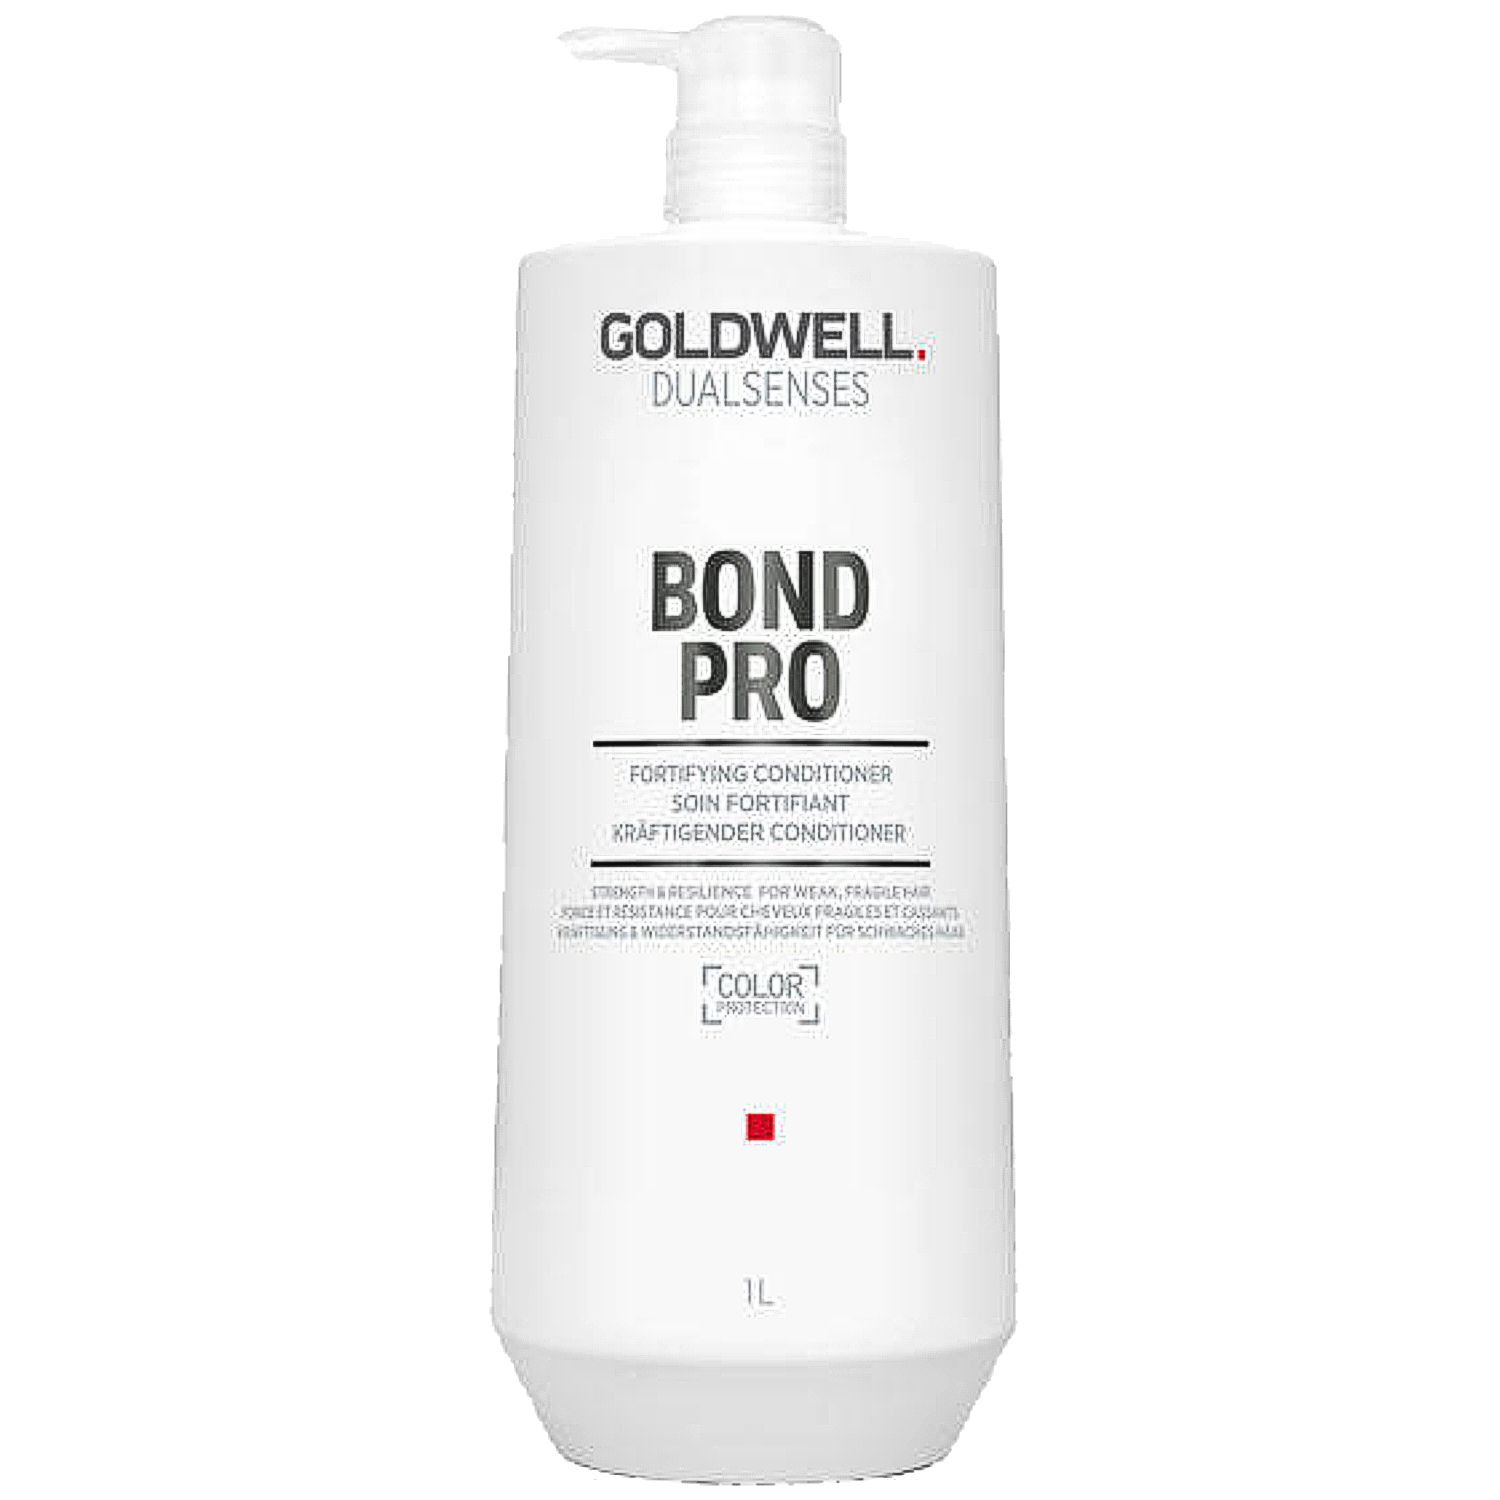 GOLDWELL Dualsenses BOND PRO Fortifying Conditioner 1 L